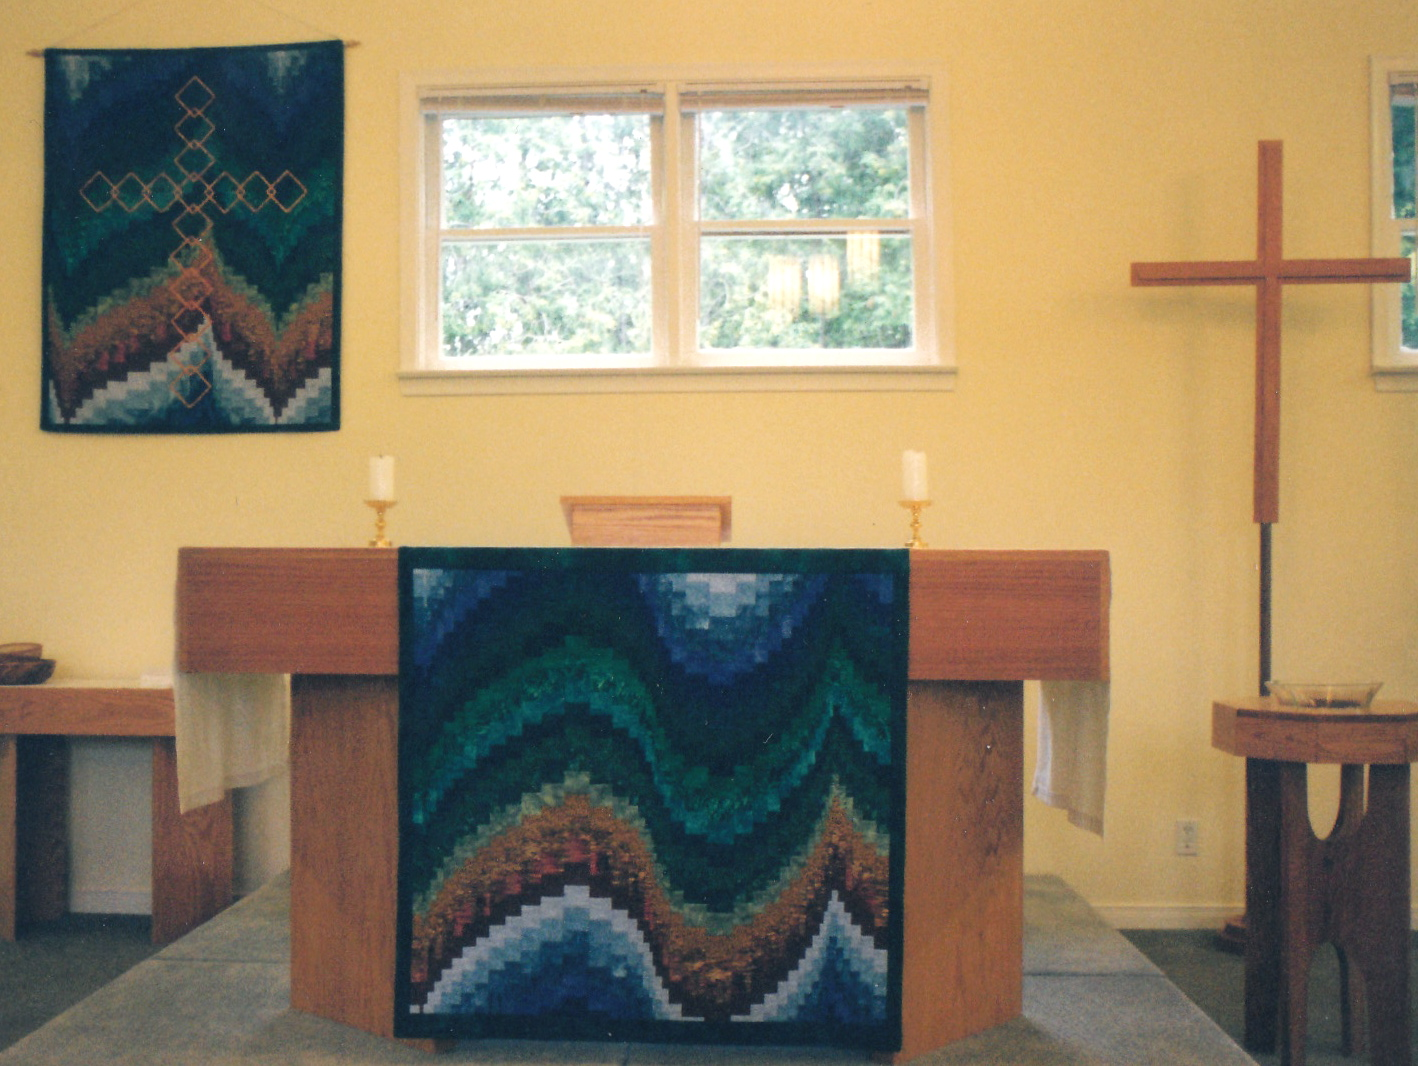 LITURGICAL FABRIC ART | DIVINE LINES